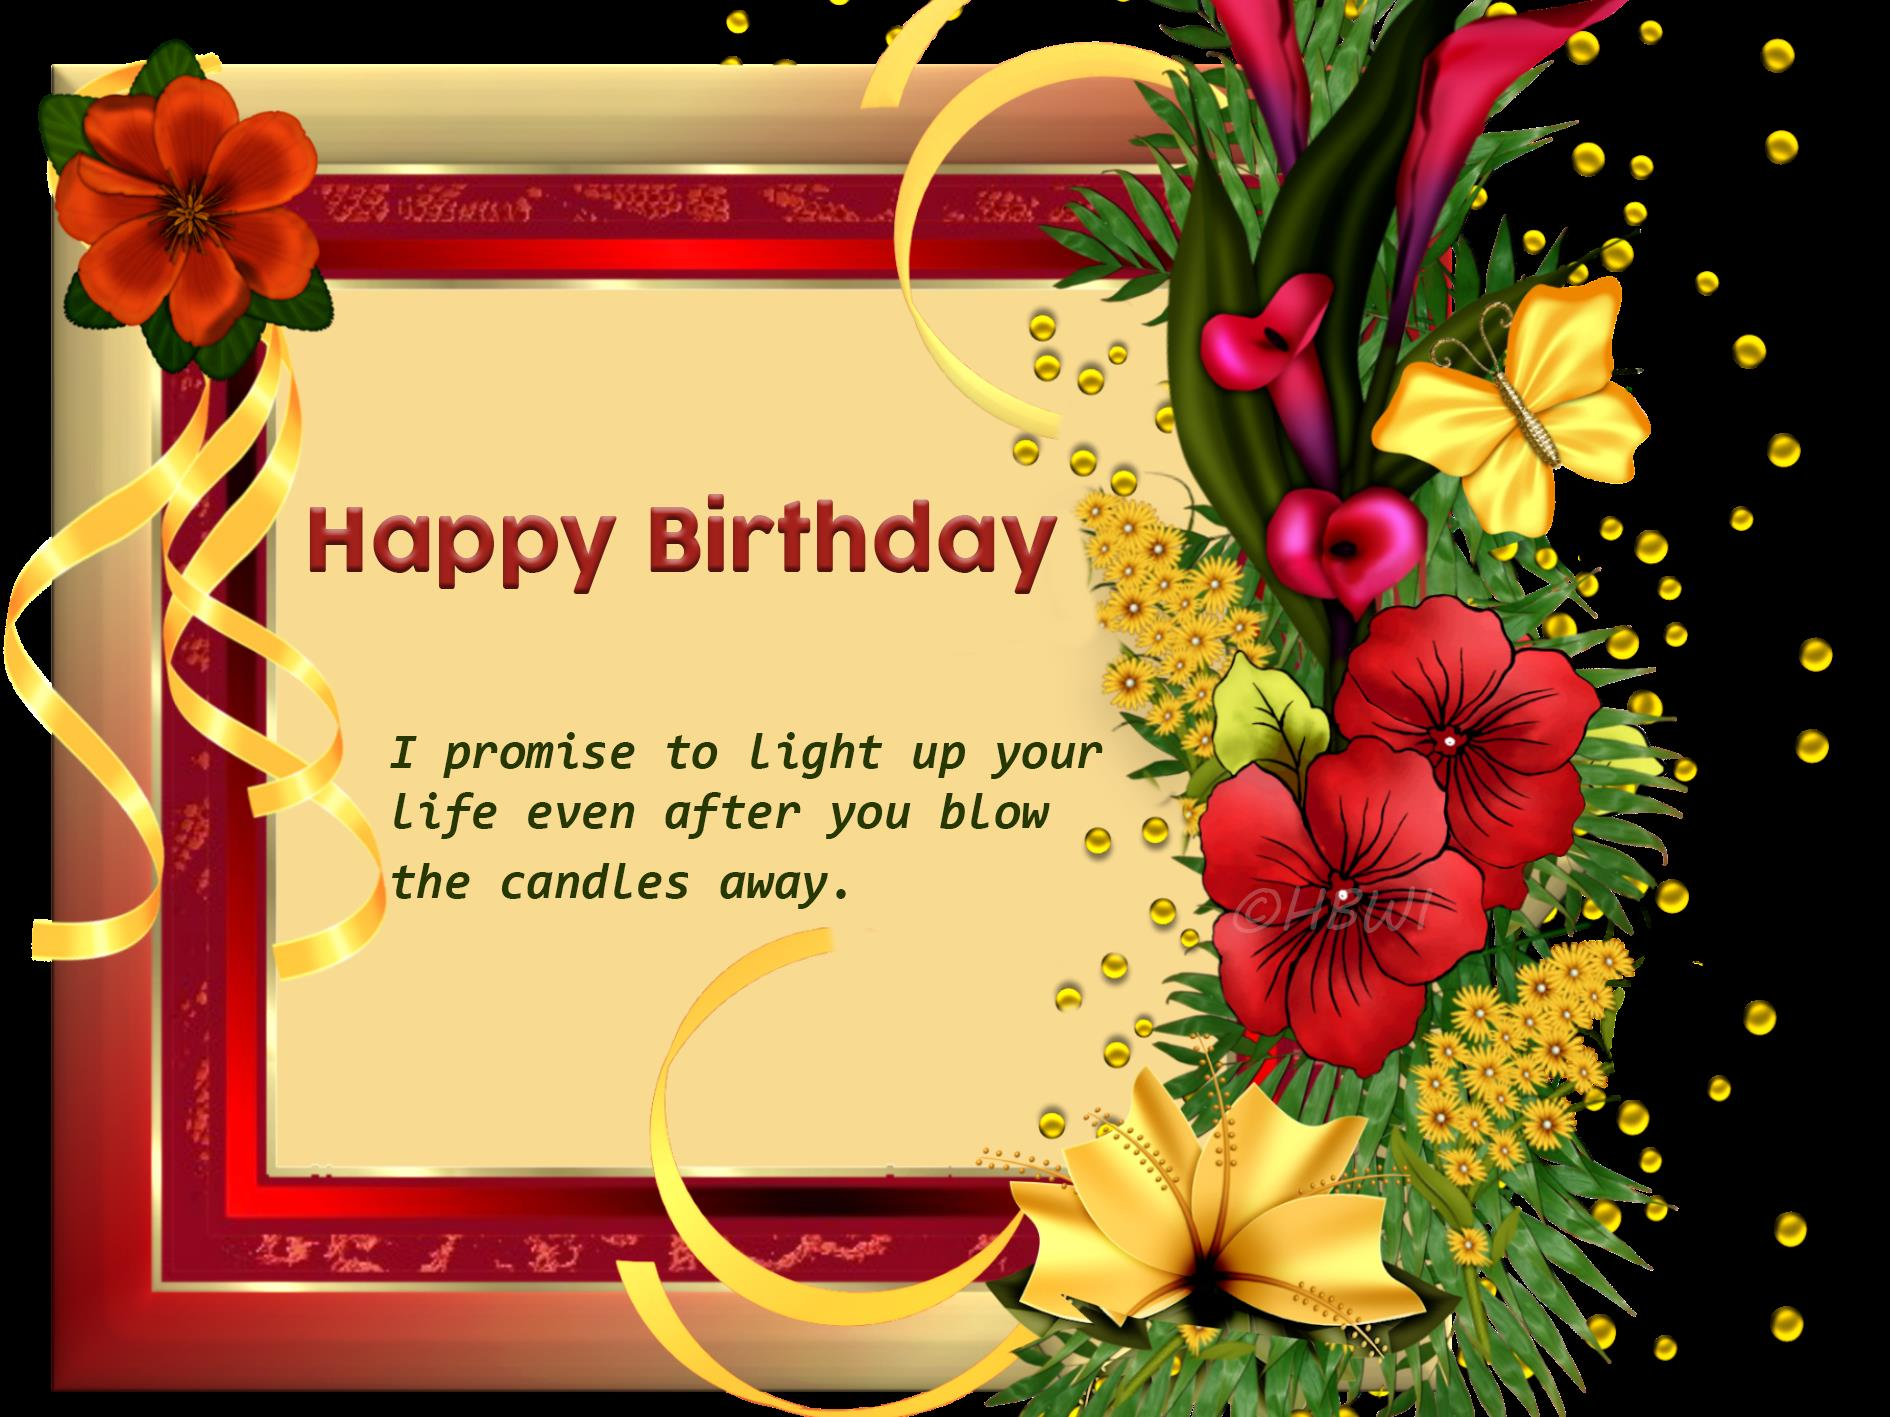 happy birthday hd images 2018 ; exclusive-Happy-birthday-wishes-cards-with-flowers